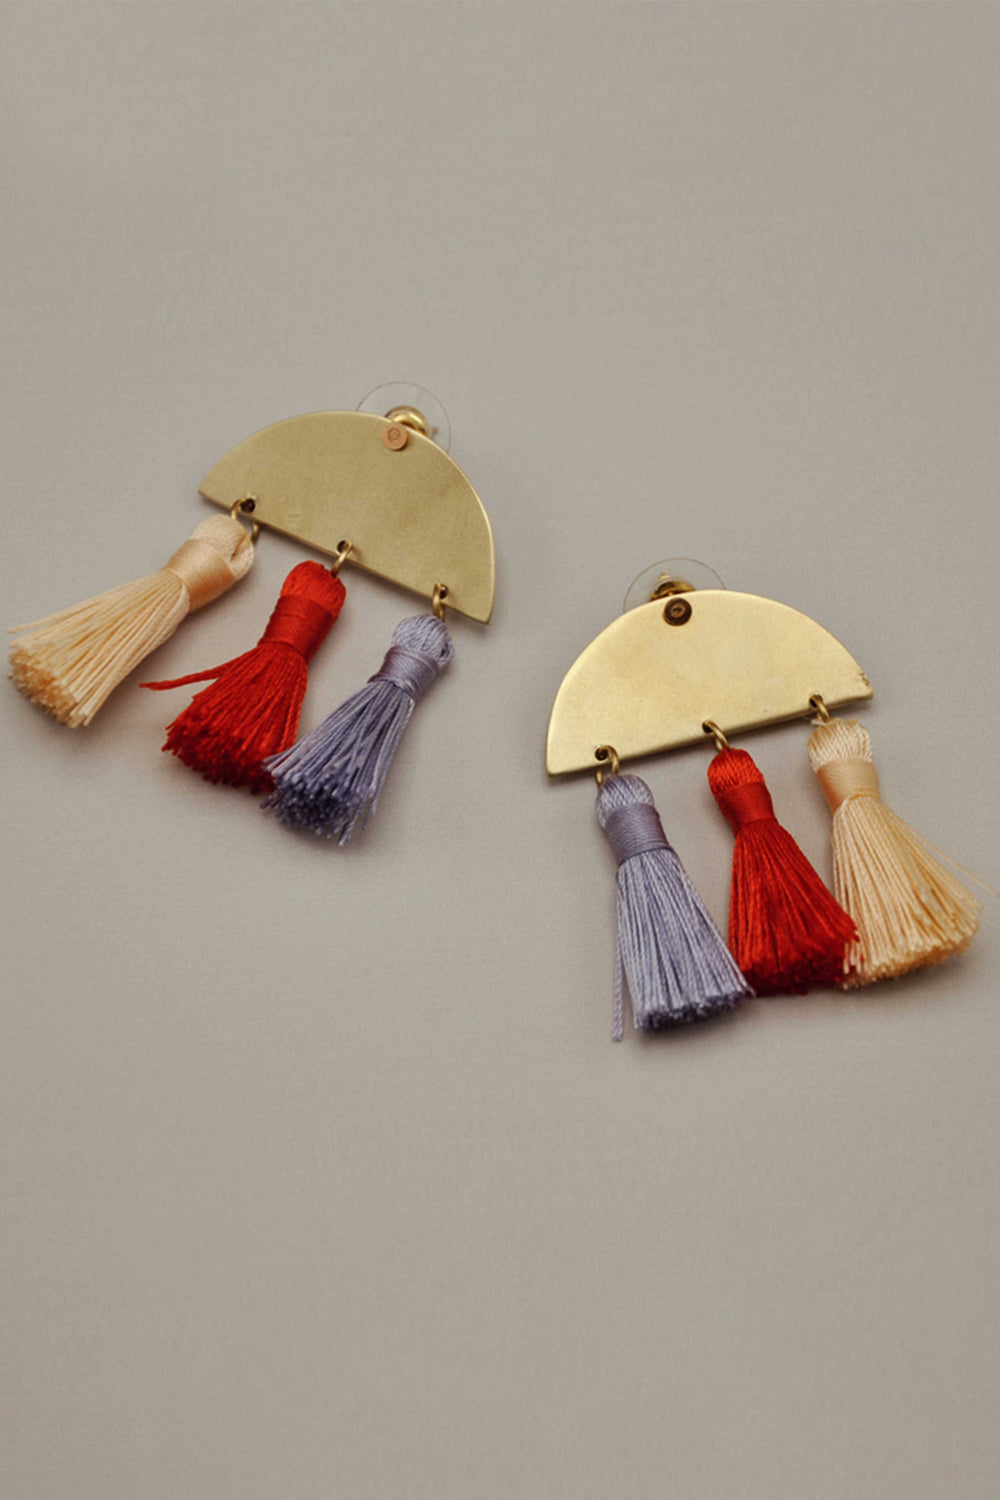 COSTA RICA EARRINGS | Women's Online Shopping | CHICLEFRIQUE  (4390878183513)